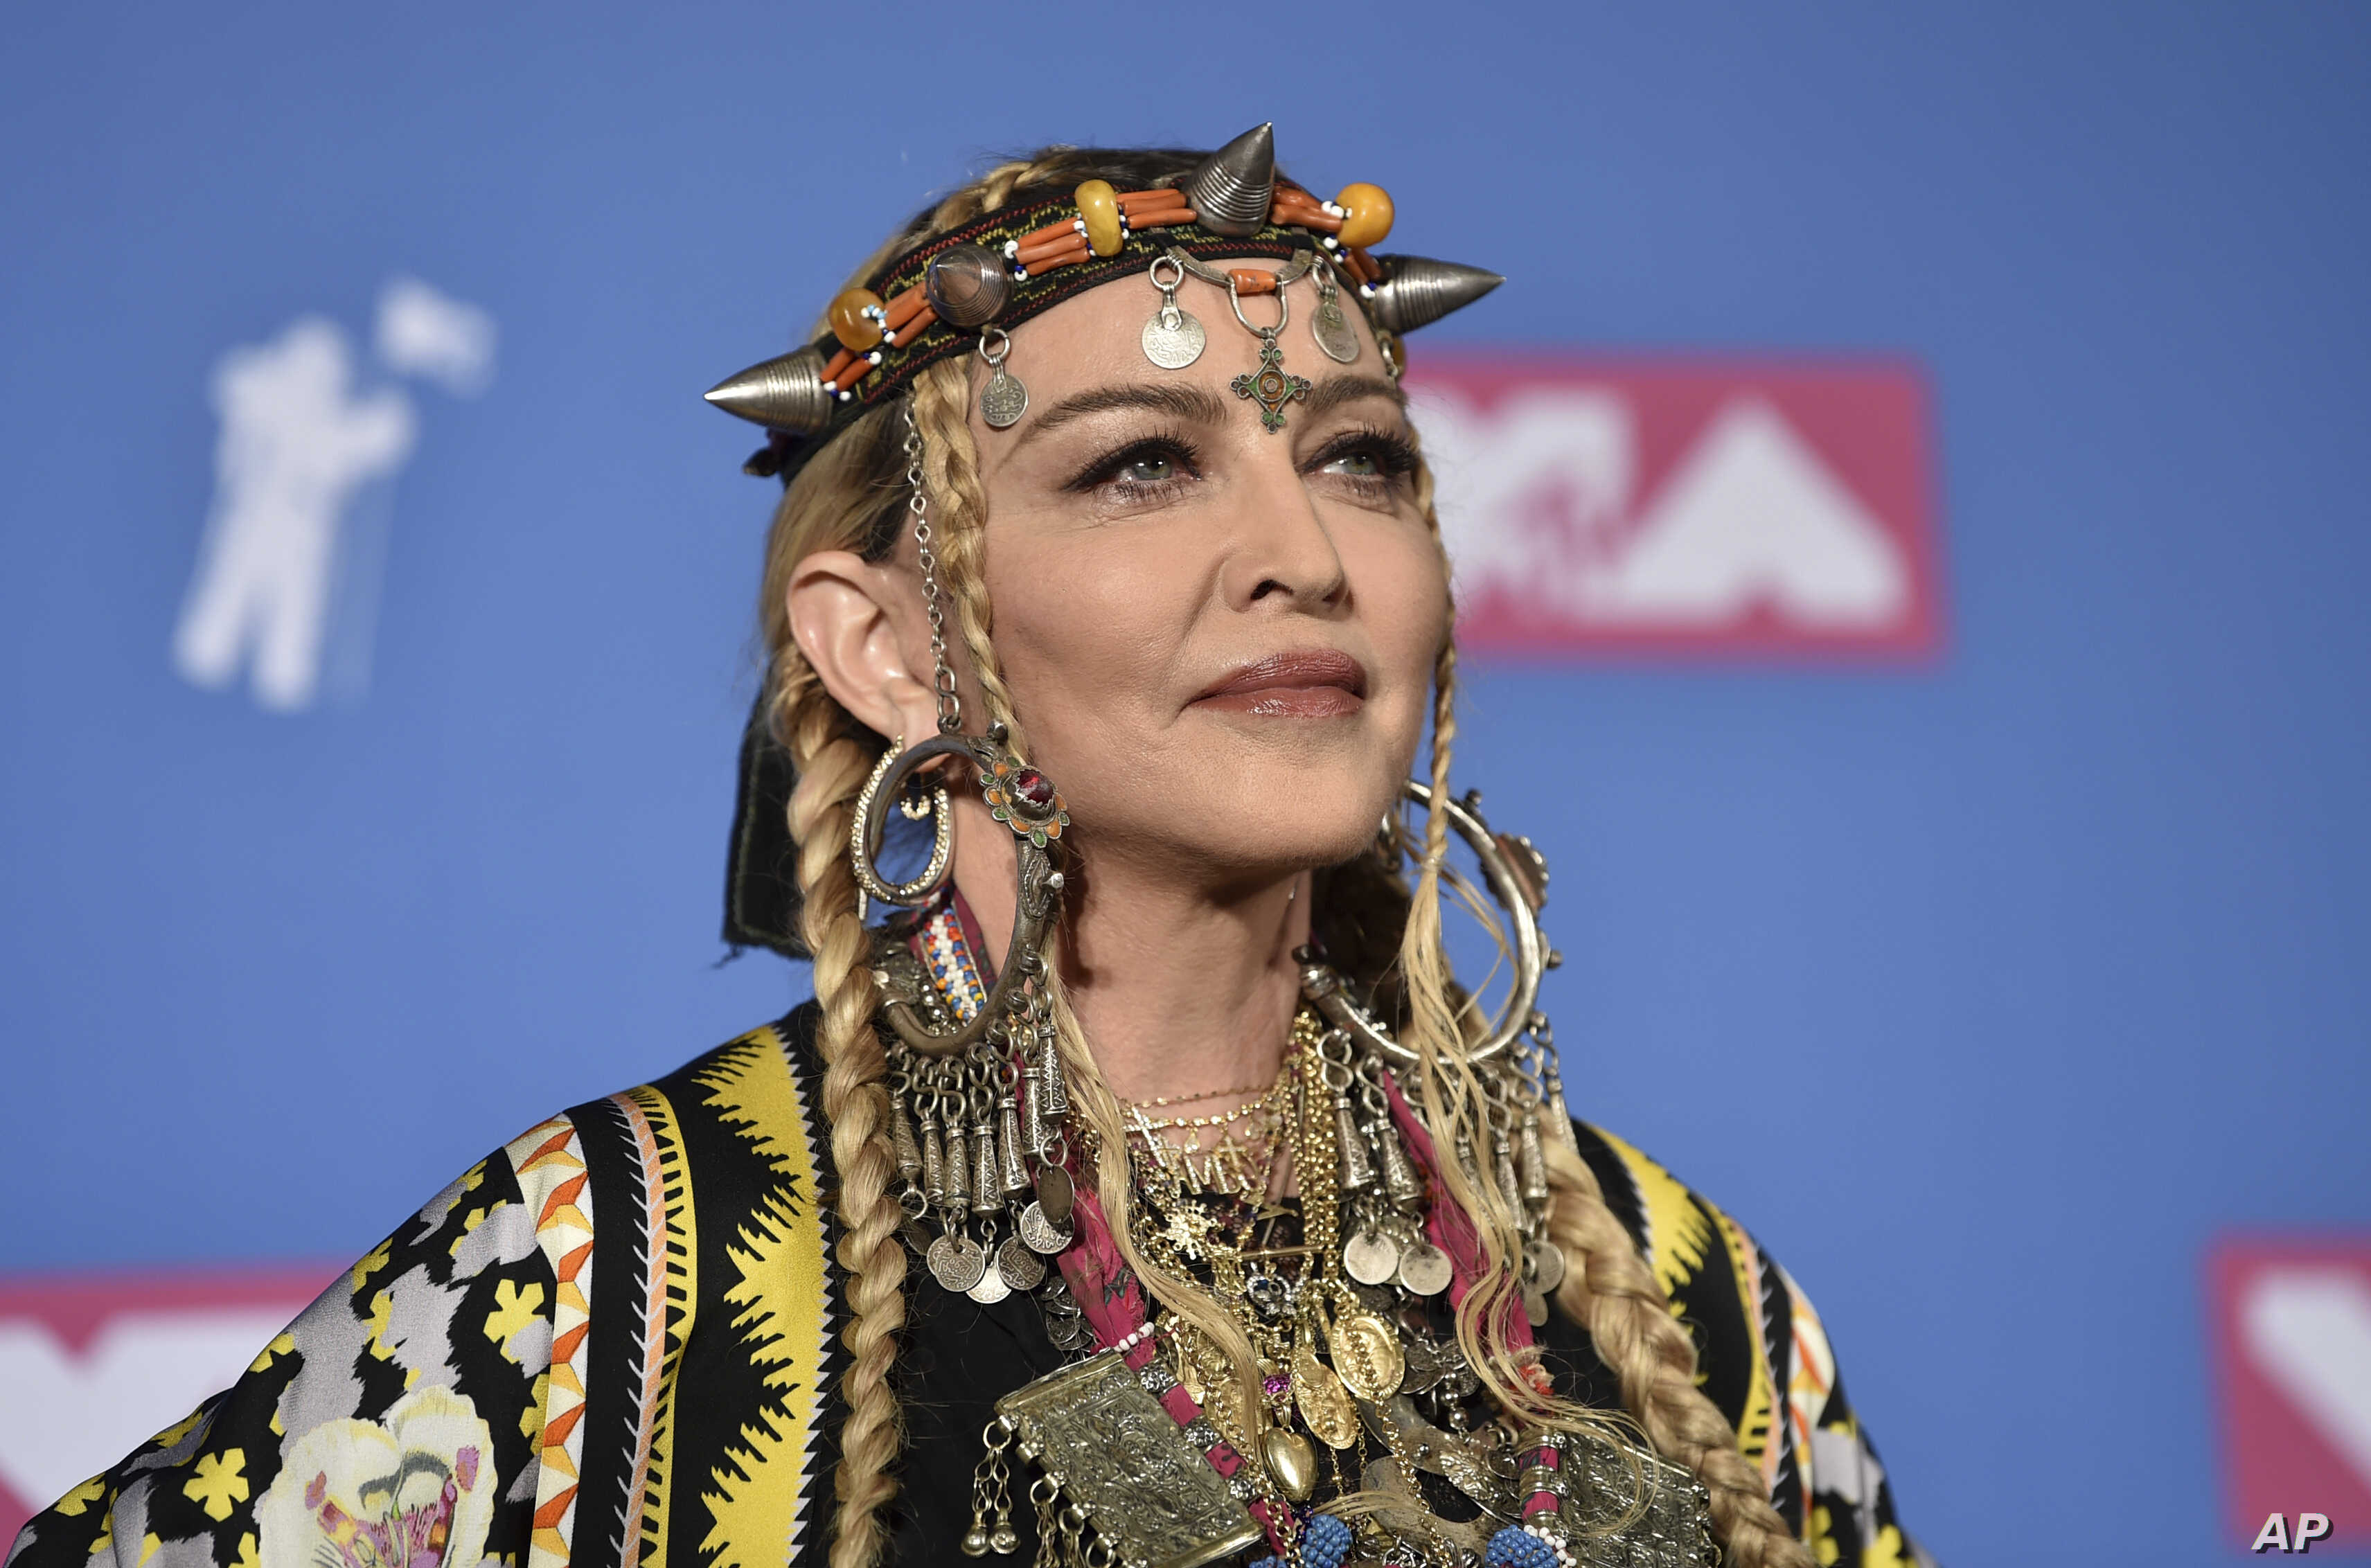 Madonna To Perform At Eurovision Song Contest In Israel Voice Of America English